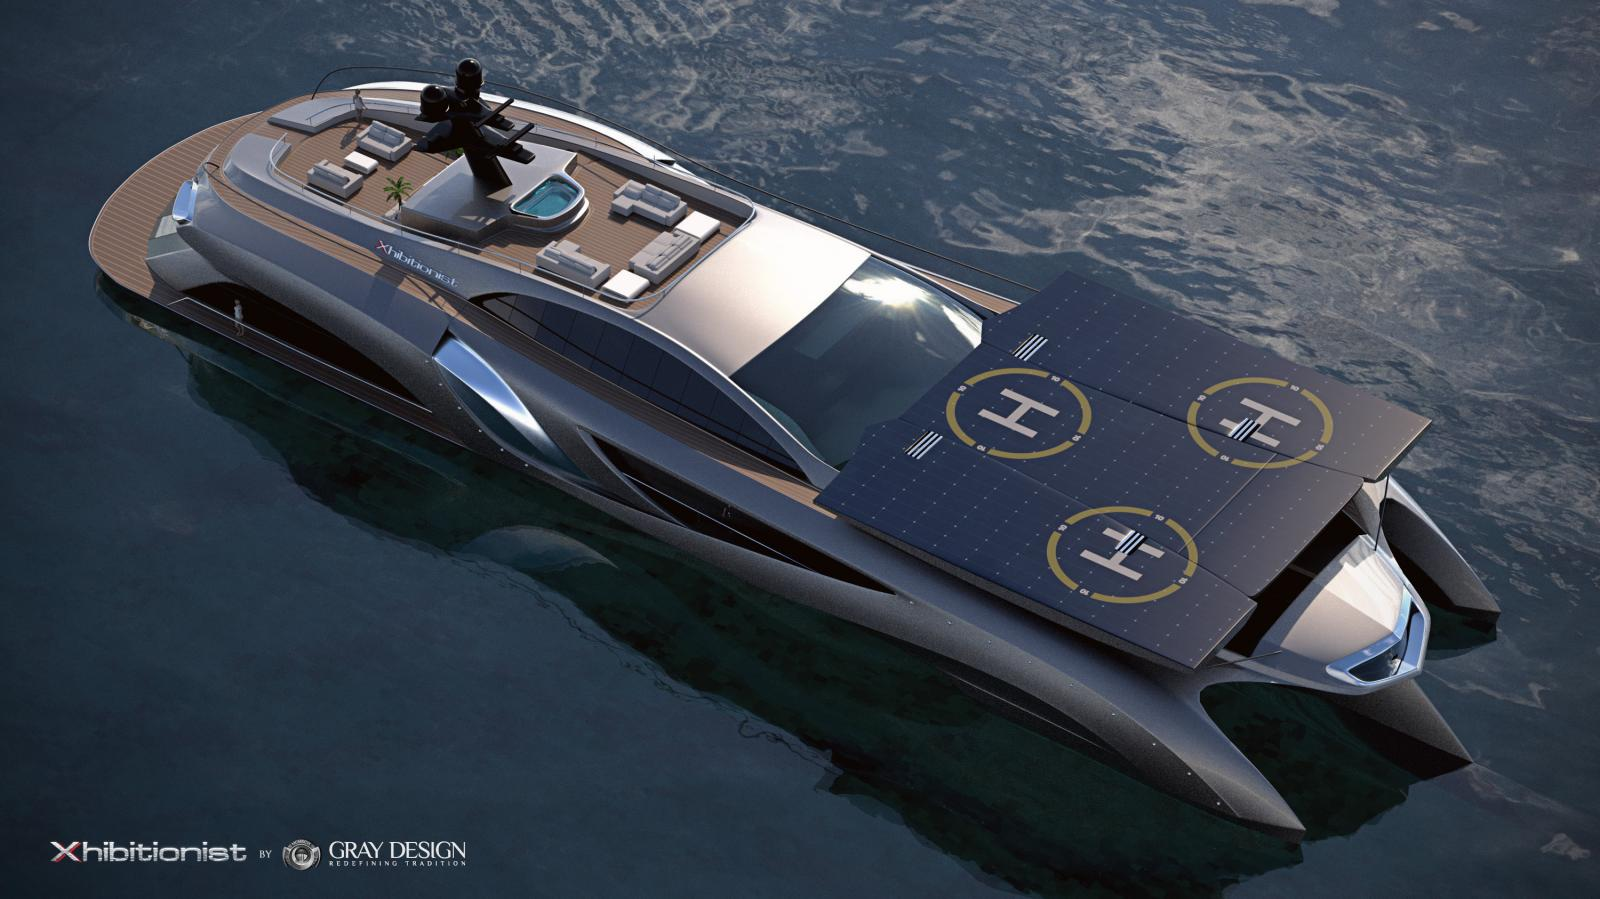 Gray-Design-Xhibitionist-yacht-and-Xhibit-G-car-3